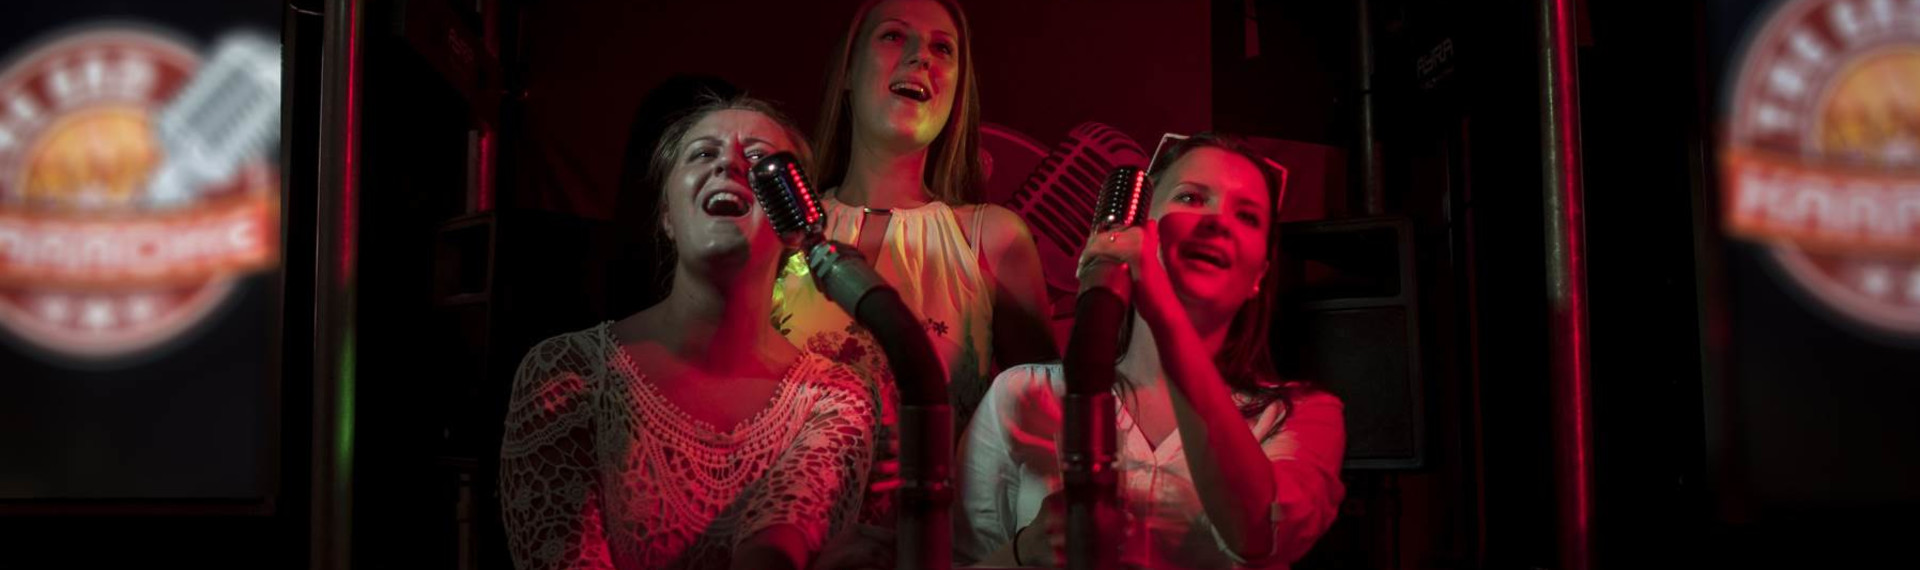 Private Karaoke-Bar Amsterdam | Pissup Reisen